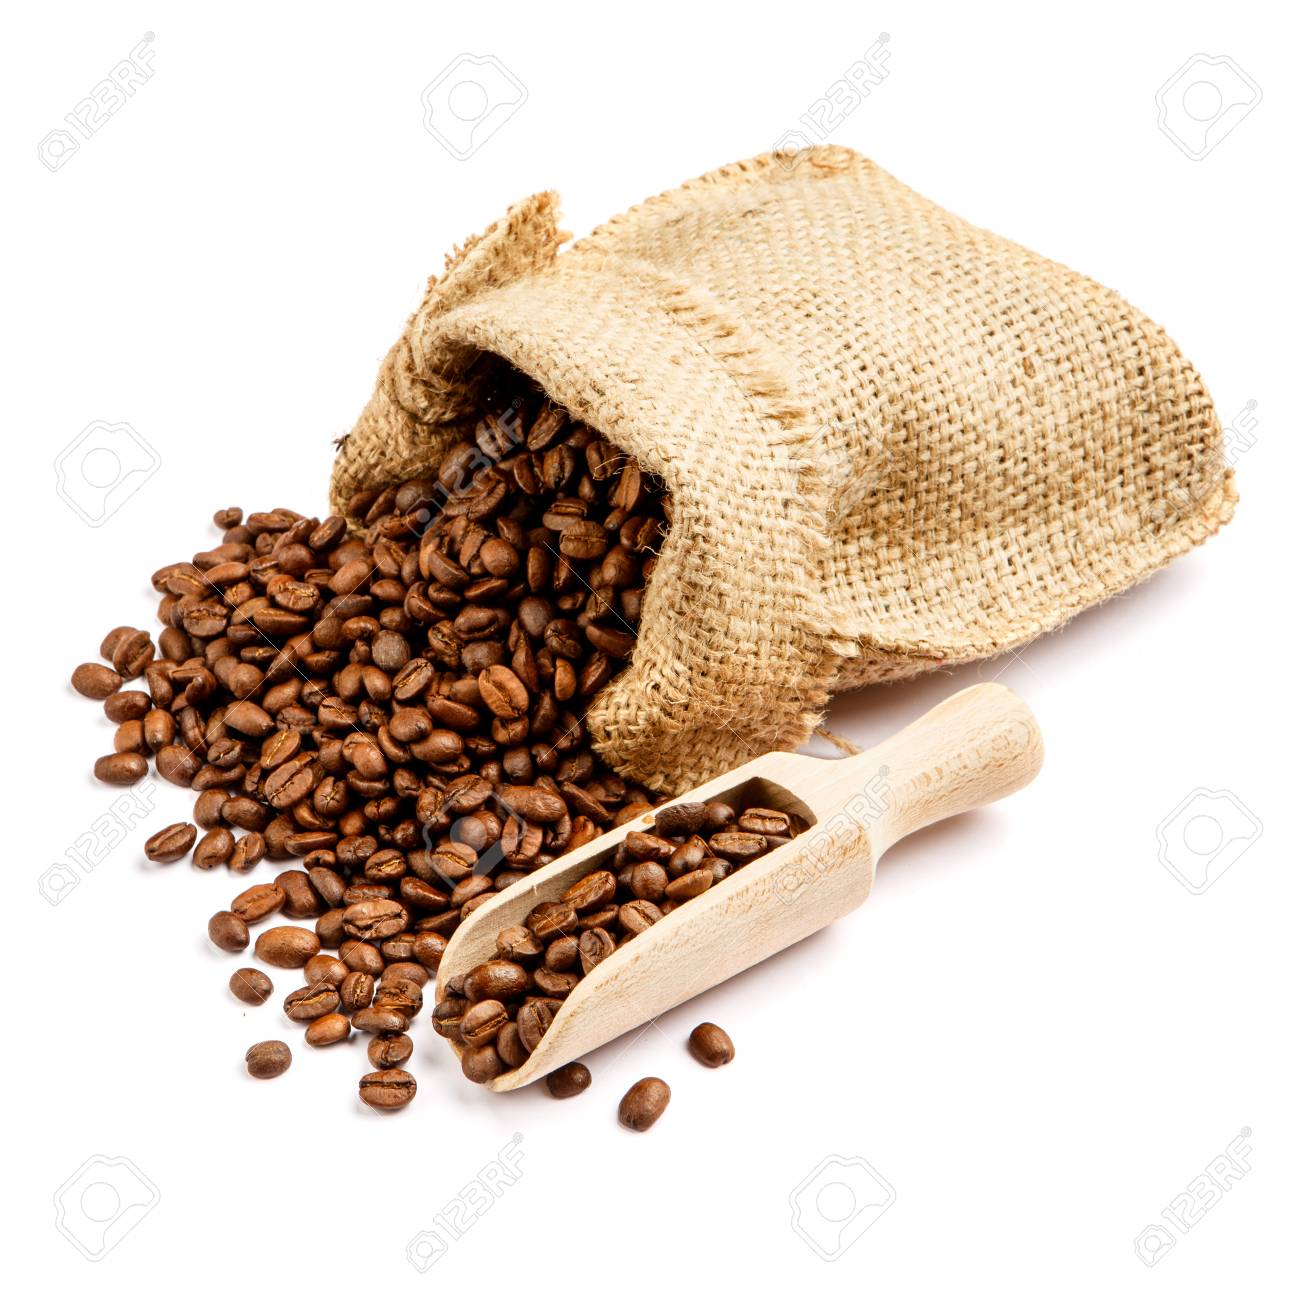 roasted coffee beans in bag isolated on white background cutout - 67990331